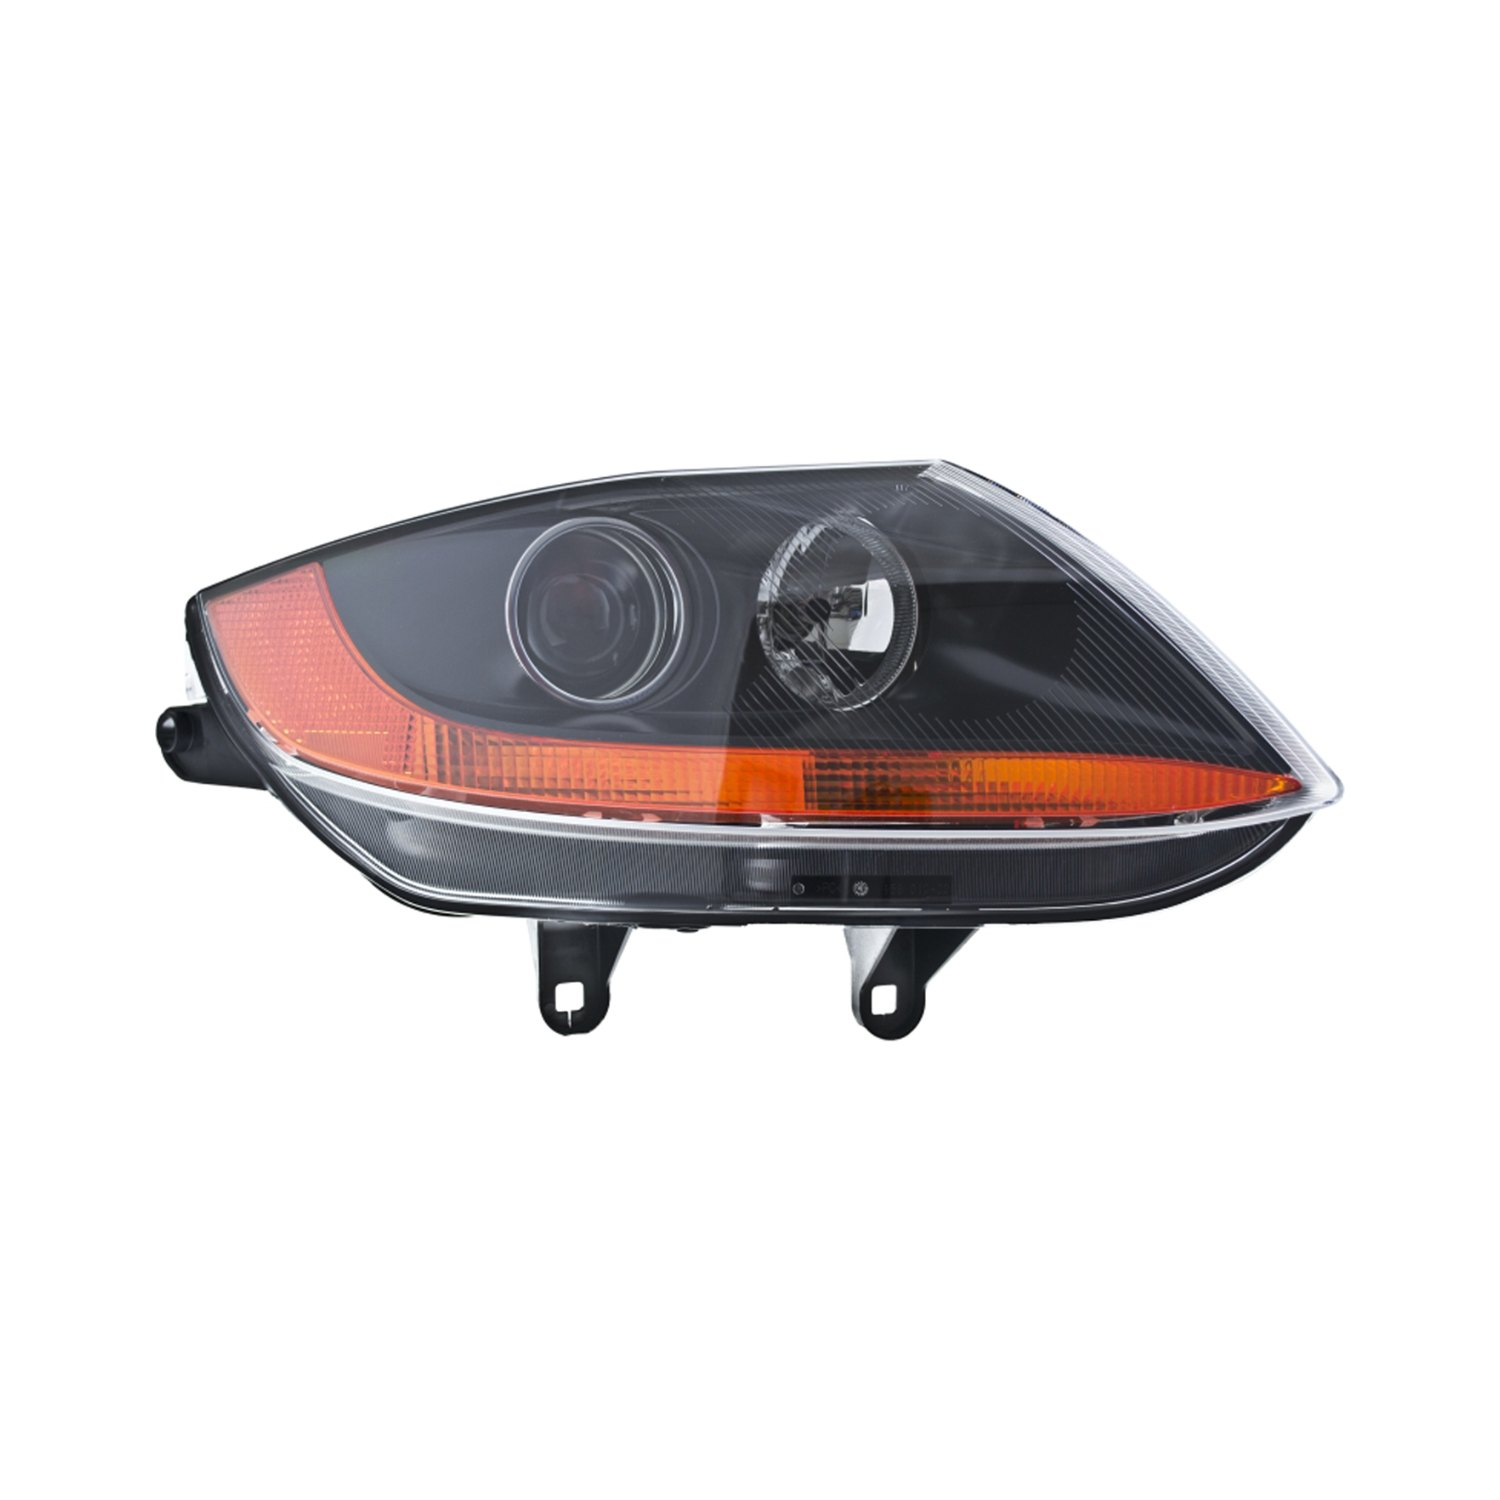 2006 Bmw Z4: BMW Z4 2006 Replacement Headlight Lens And Housing